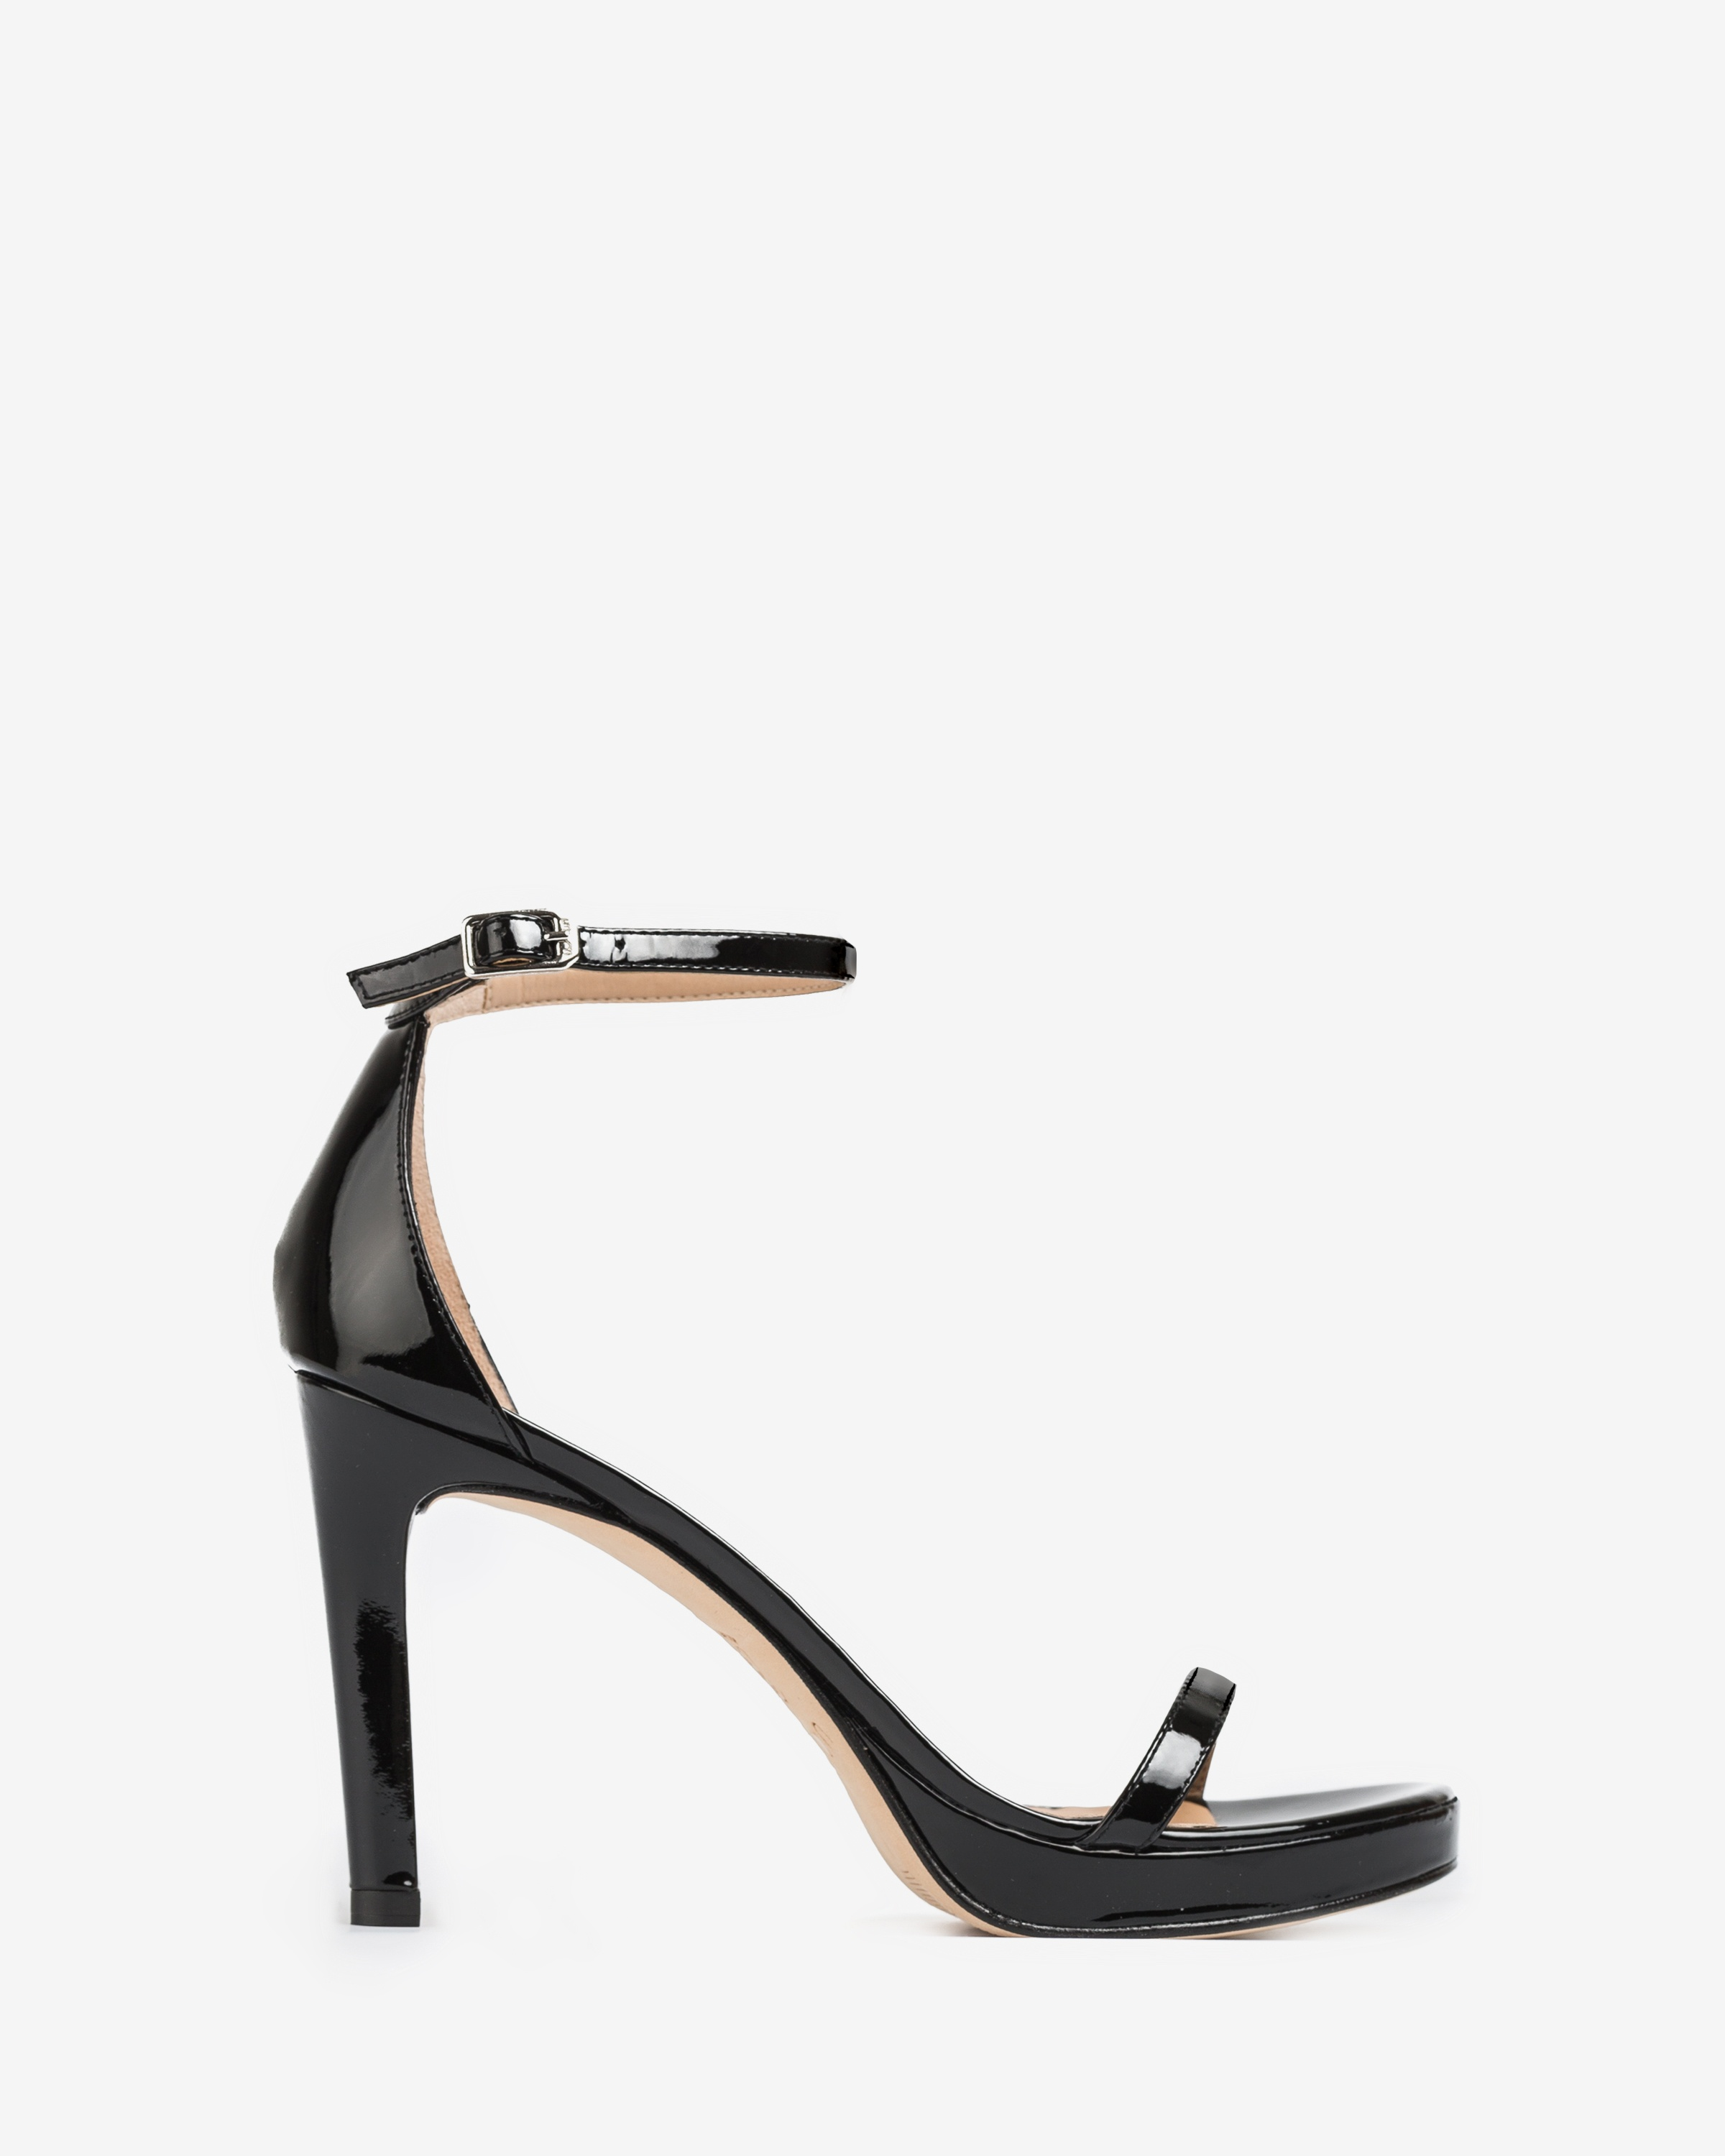 Patent leather sandals ankle strap